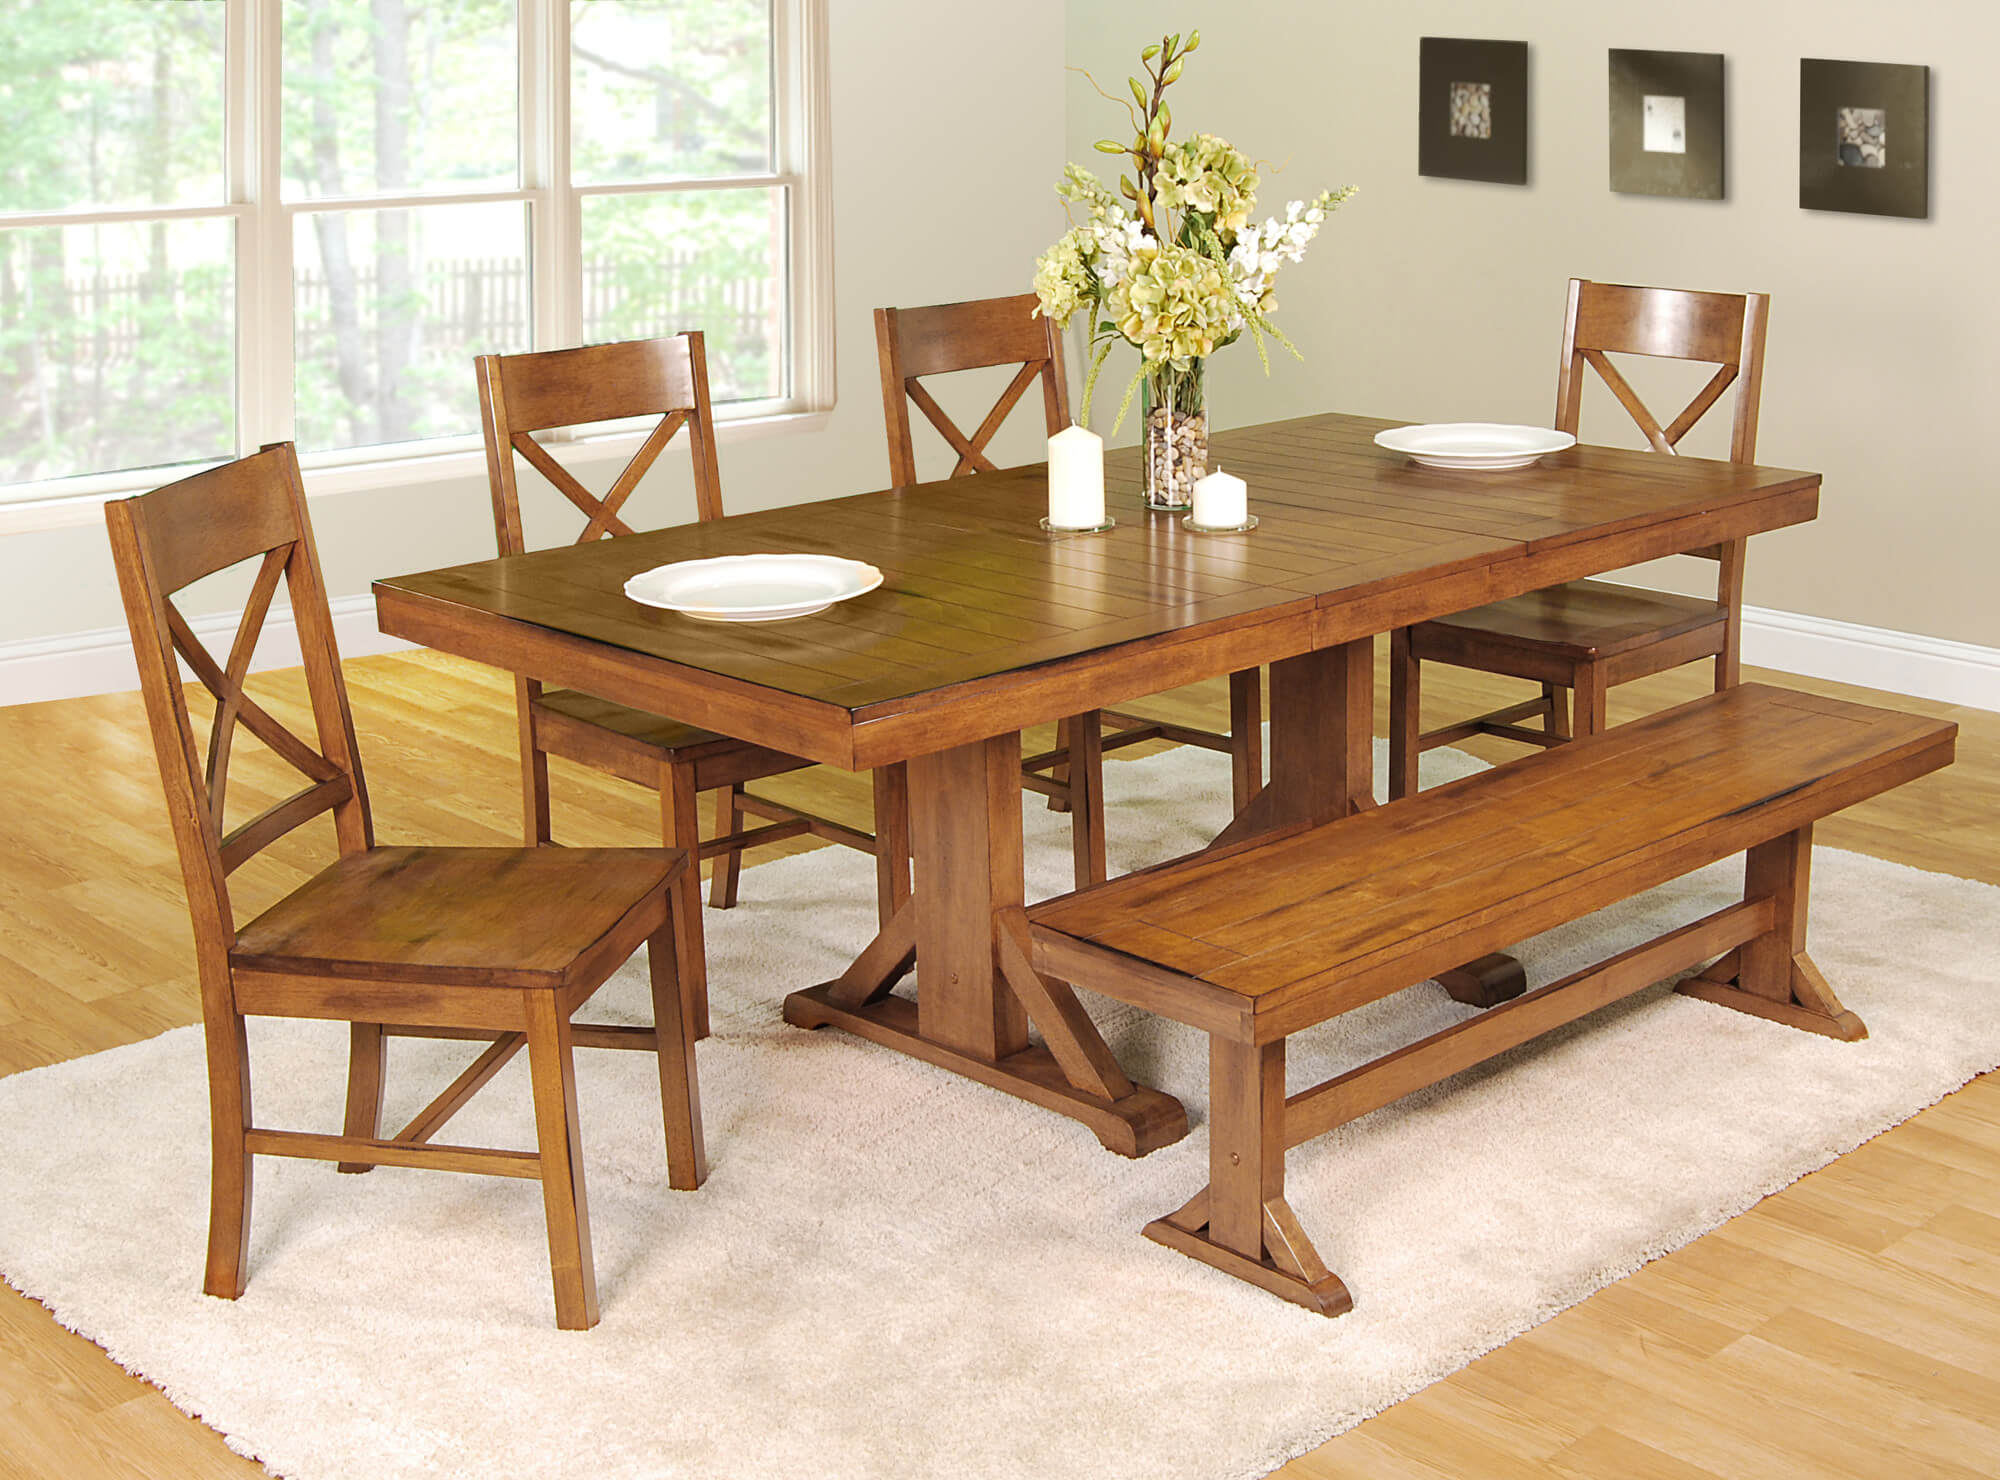 Superb This Dining Room Set With Bench Is Going For The Antique Look With An  Antique Brown Awesome Design